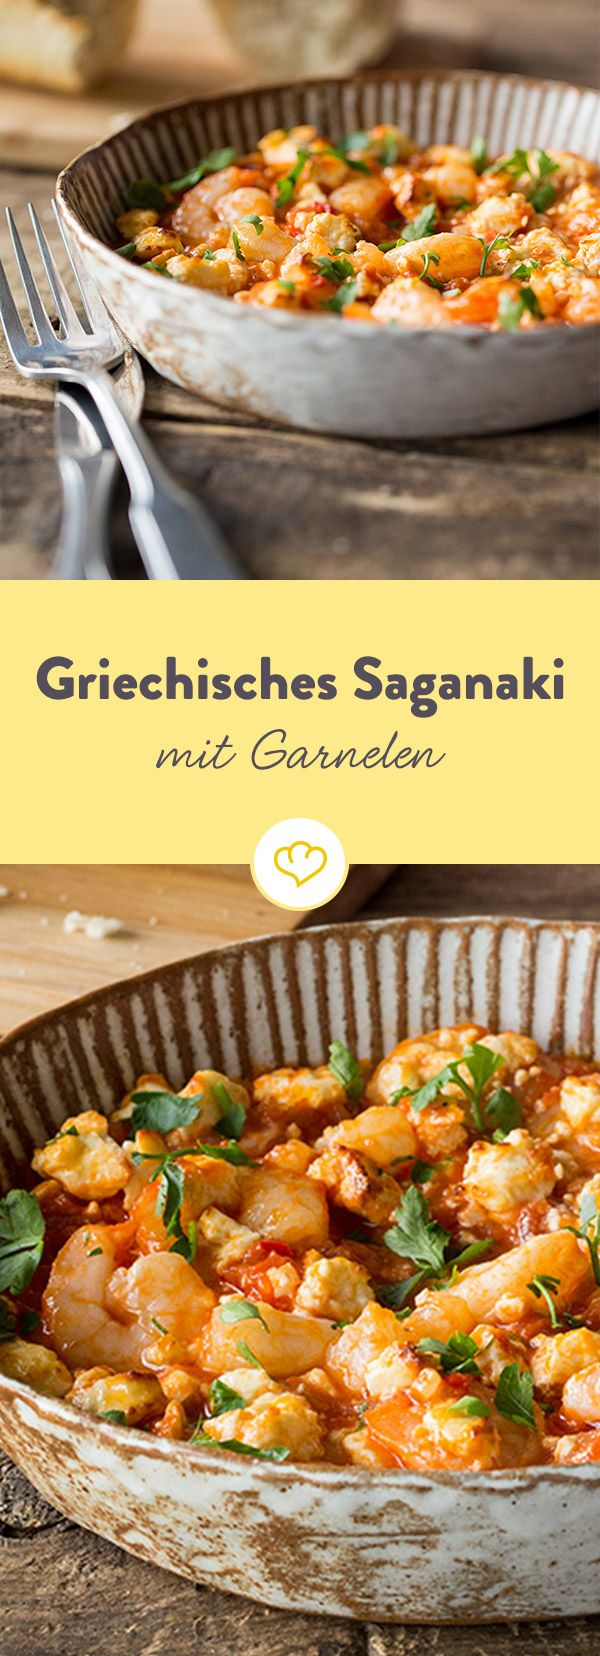 griechisches saganaki mit garnelen rezept in 80 t pfen um die welt pinterest. Black Bedroom Furniture Sets. Home Design Ideas